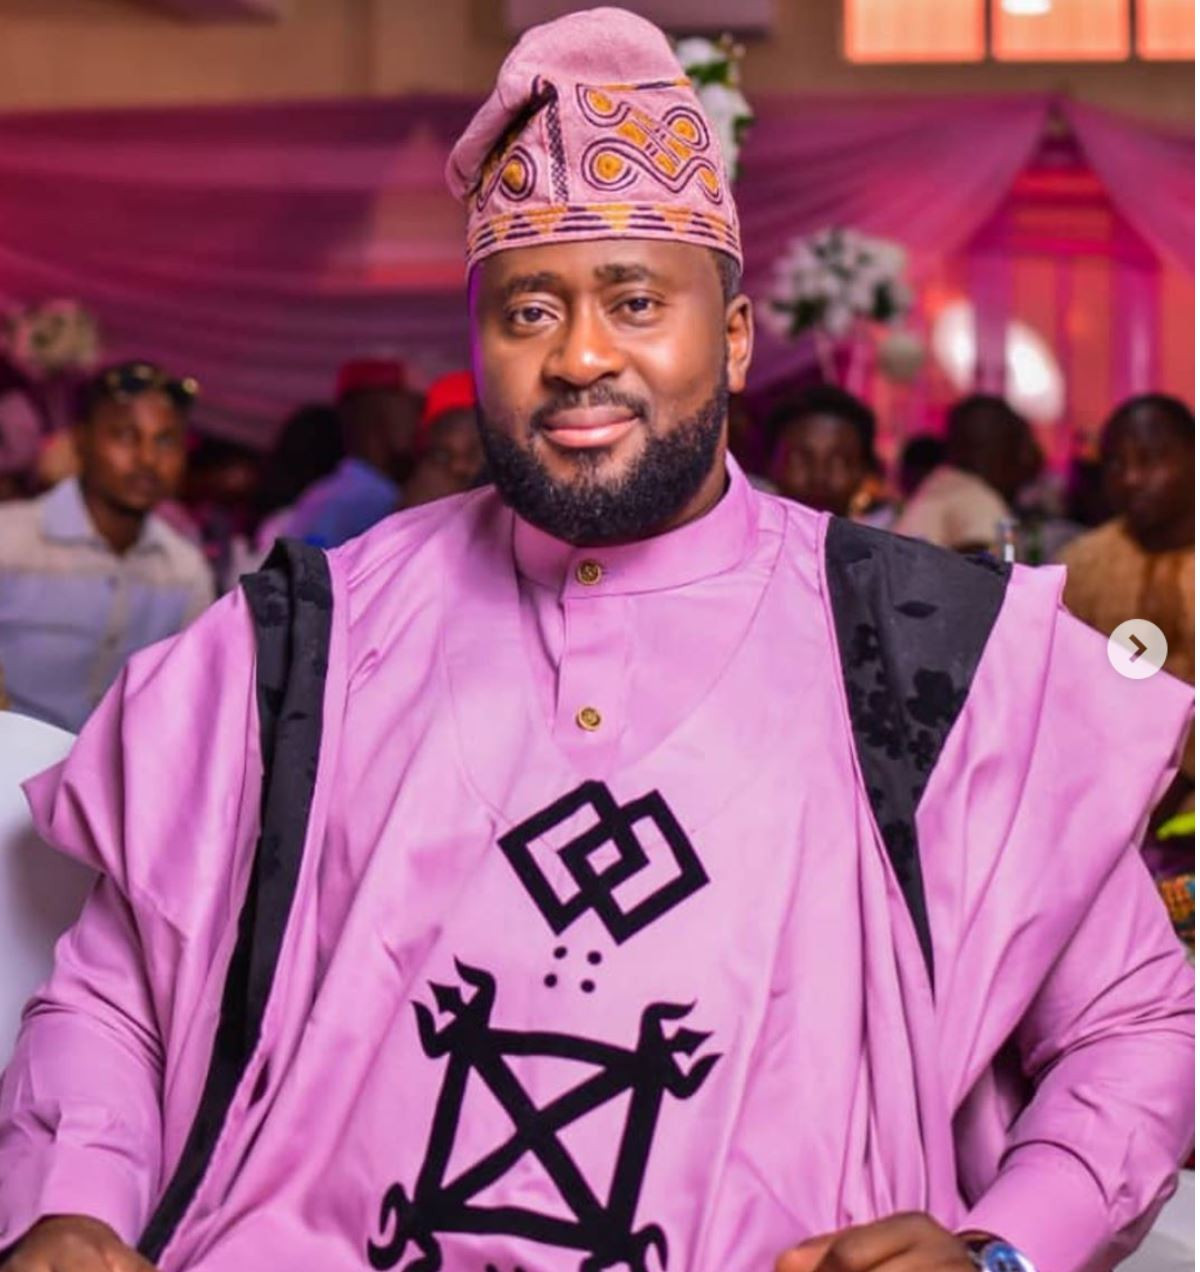 Desmond Elliot turns off the comment section of his Instagram handle